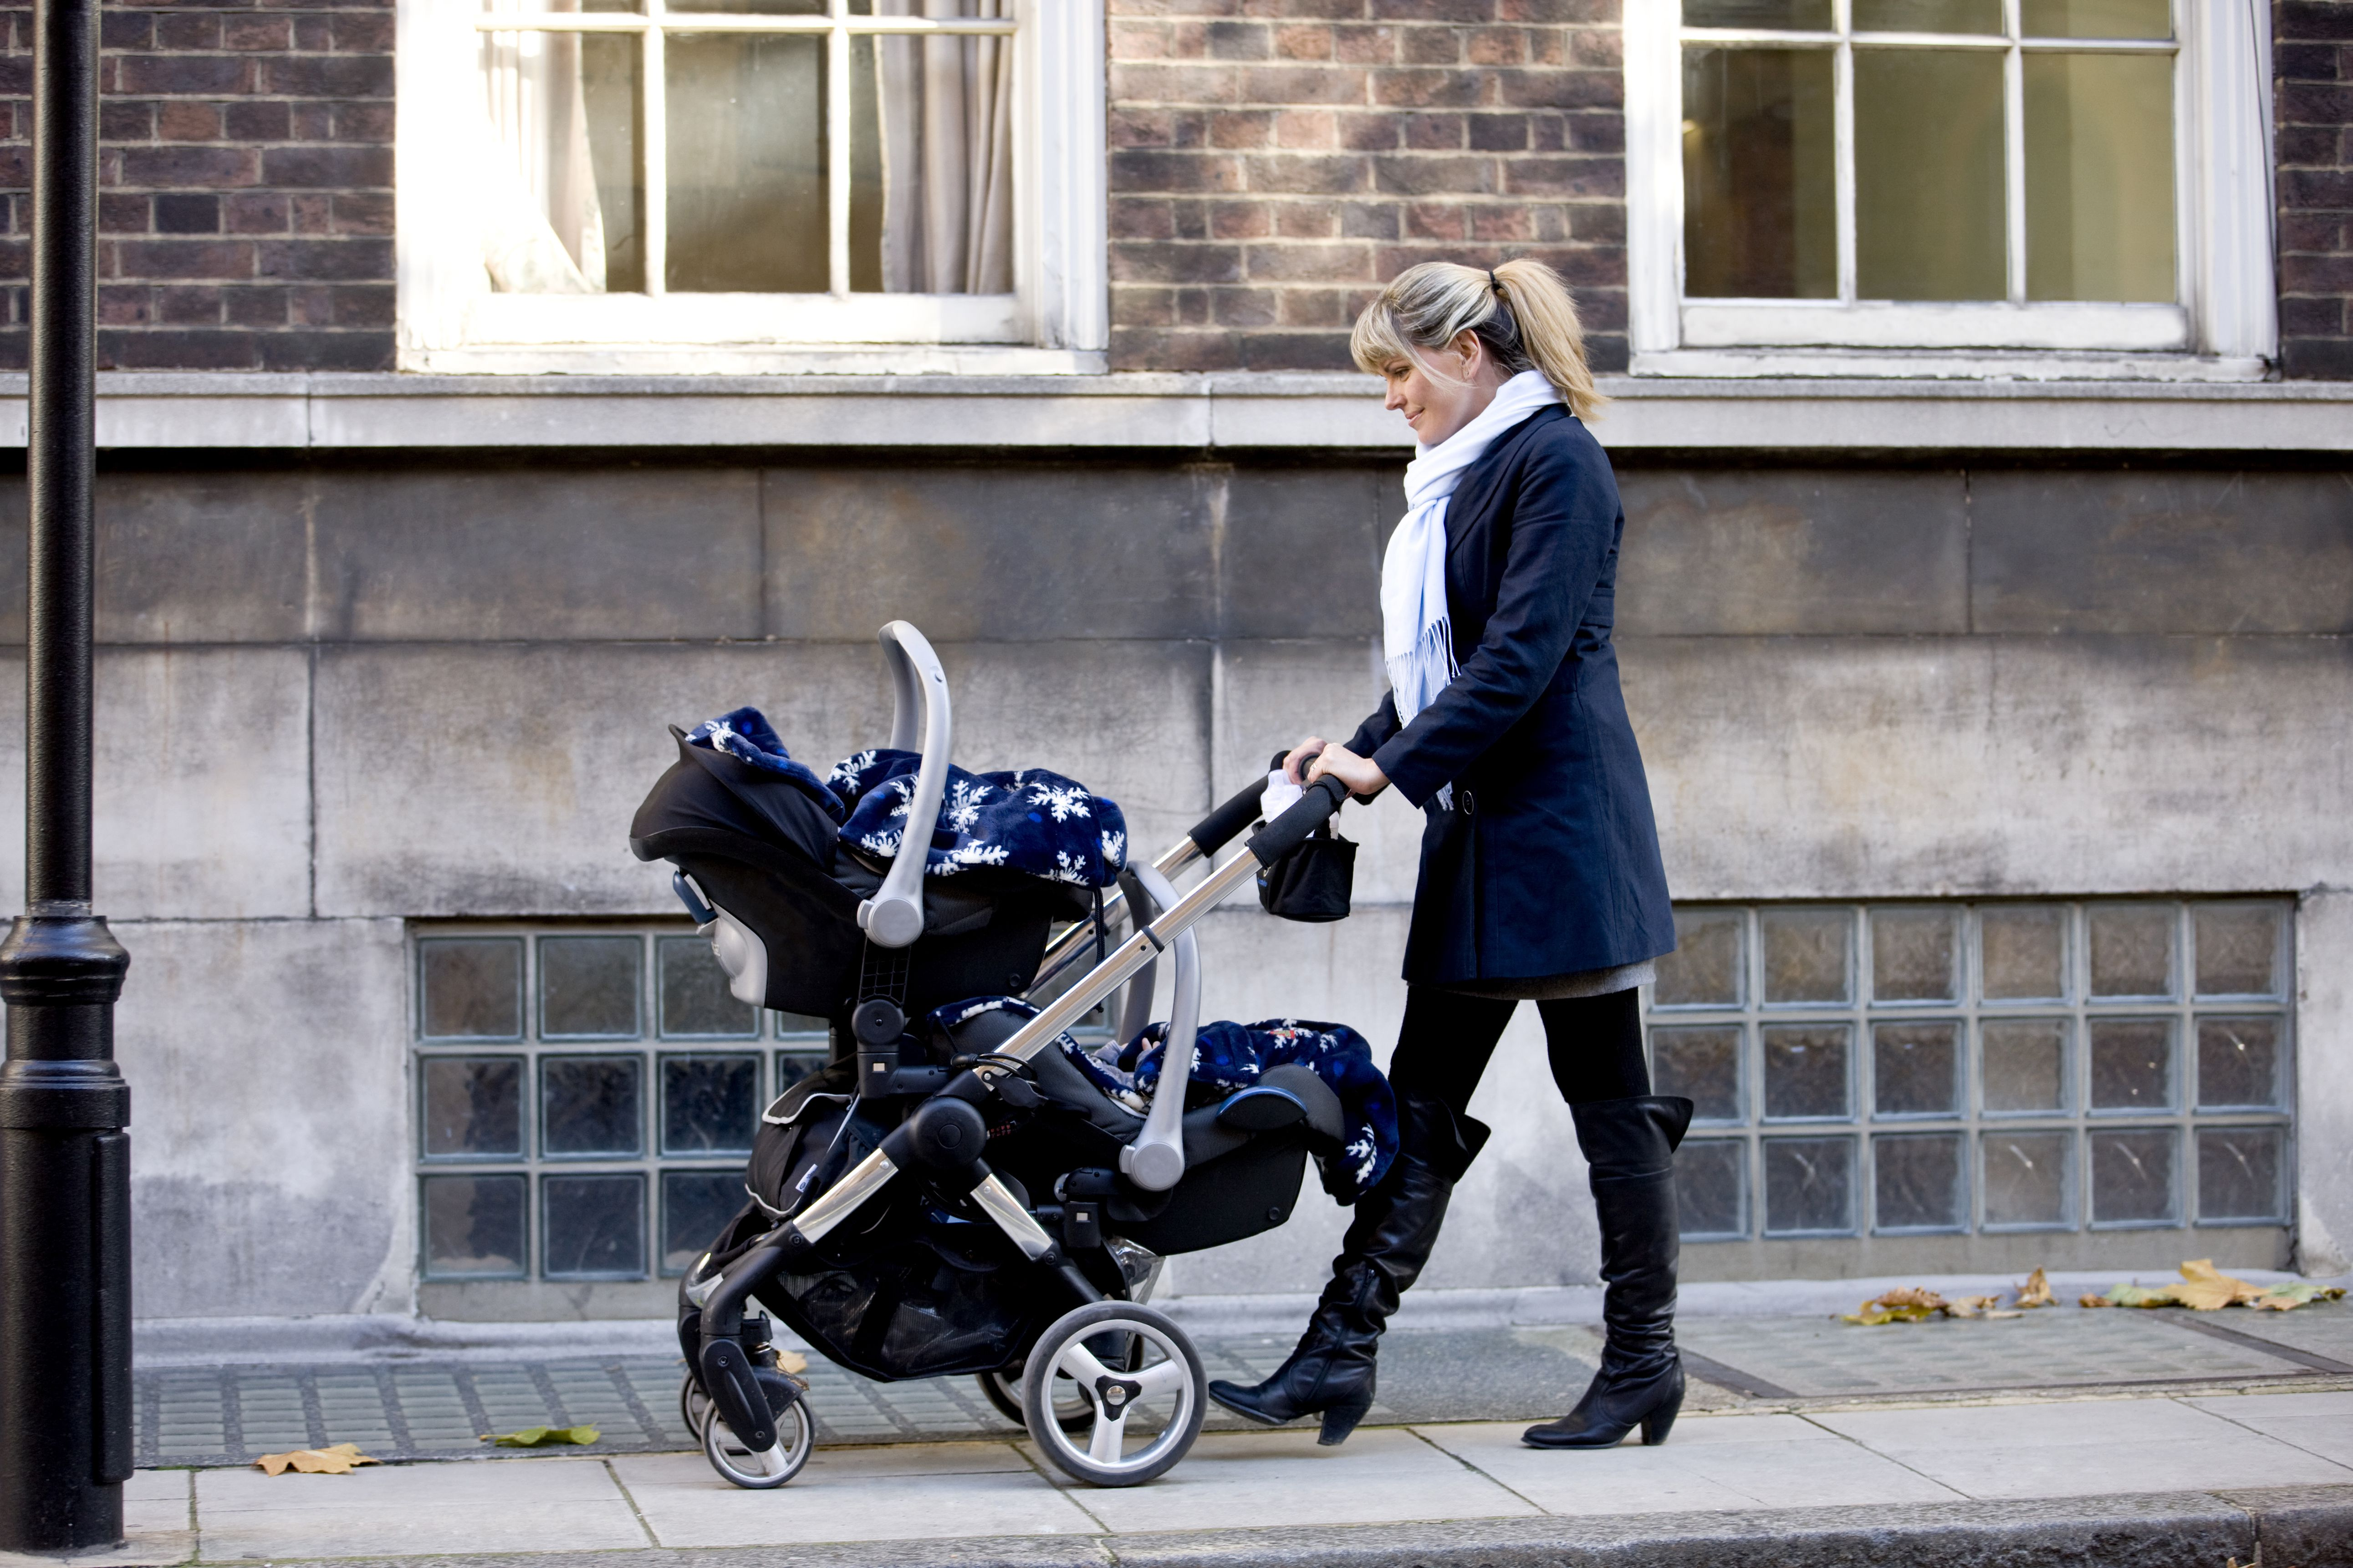 Woman pushing a double stroller on a street